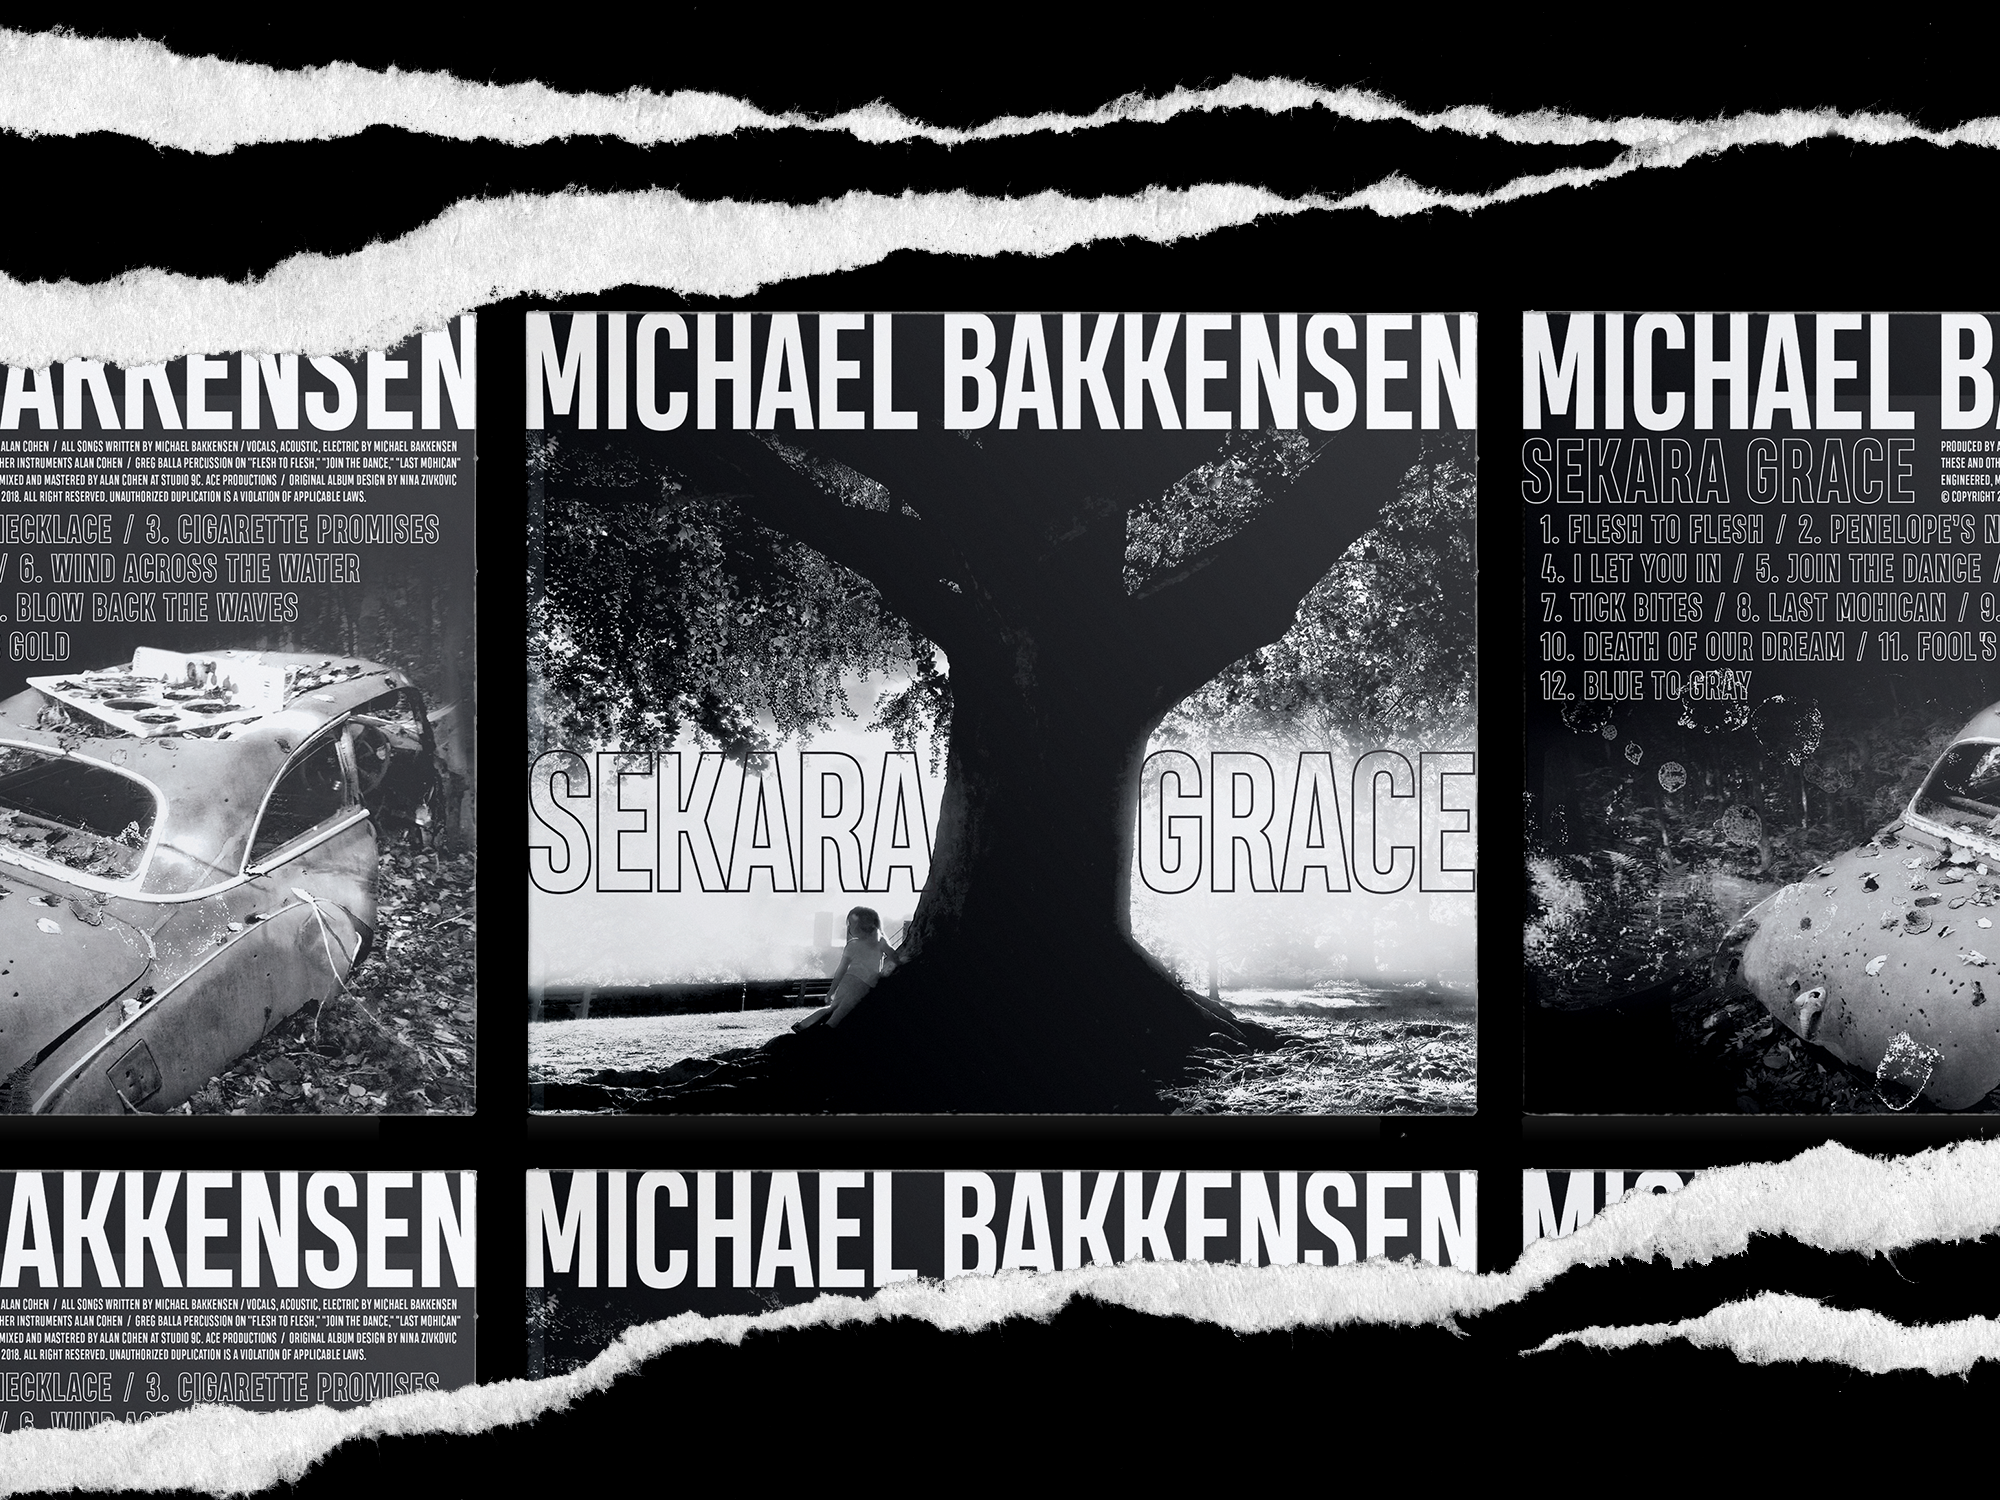 Ninazivkovic behance illustrator graphicdesign albumcover michael bakkensen sekaragrace hdr